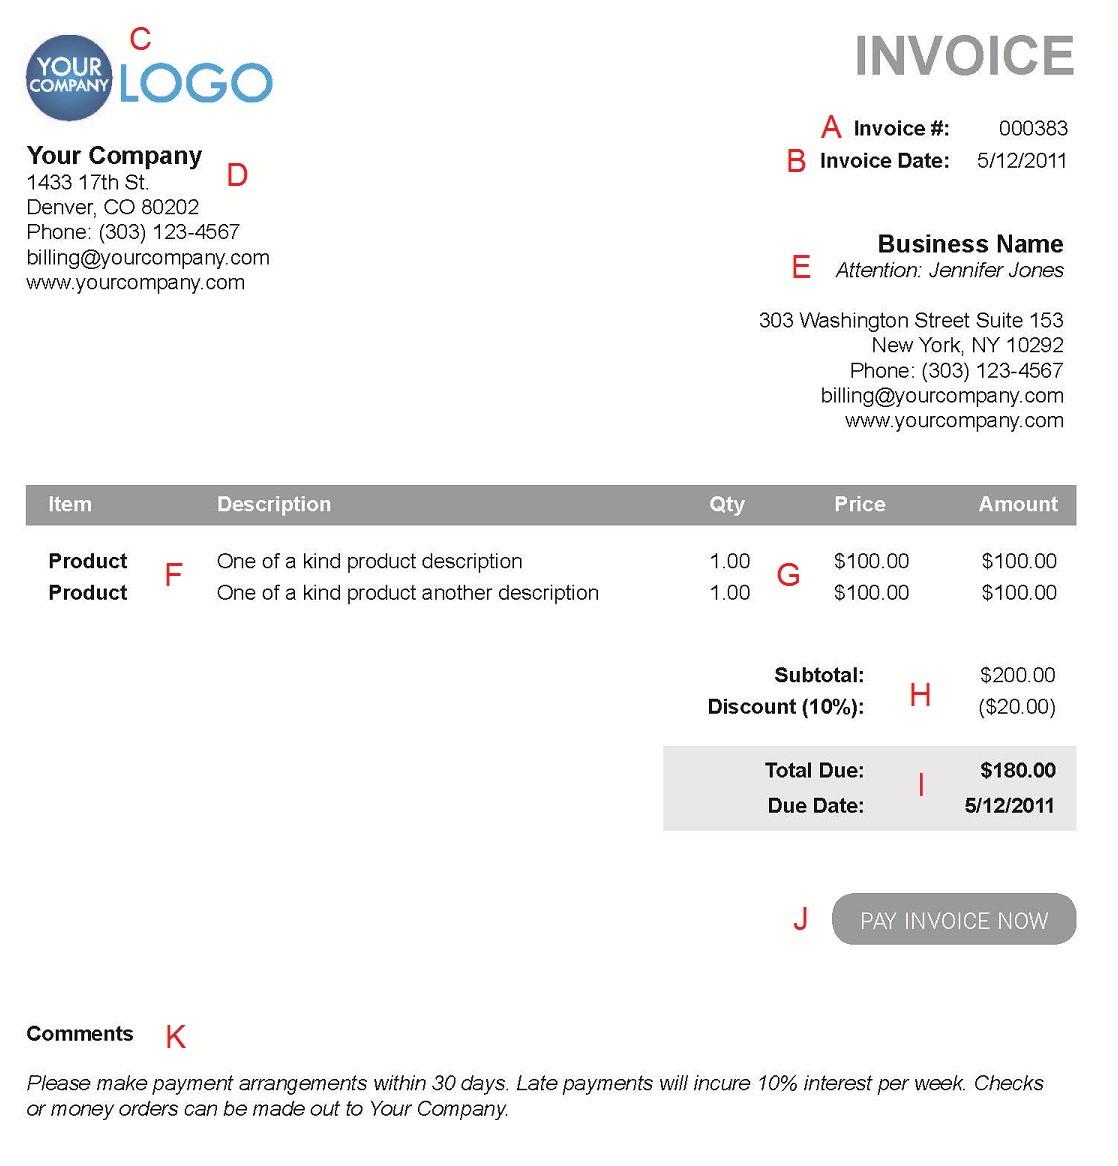 Darkfaderus  Scenic The  Different Sections Of An Electronic Payment Invoice With Fetching A  With Agreeable Excel Invoice Template Also Invoicing In Addition Free Invoice Templates And Invoice Example As Well As Lps Invoice Management Additionally Create An Invoice From Paysimplecom With Darkfaderus  Fetching The  Different Sections Of An Electronic Payment Invoice With Agreeable A  And Scenic Excel Invoice Template Also Invoicing In Addition Free Invoice Templates From Paysimplecom